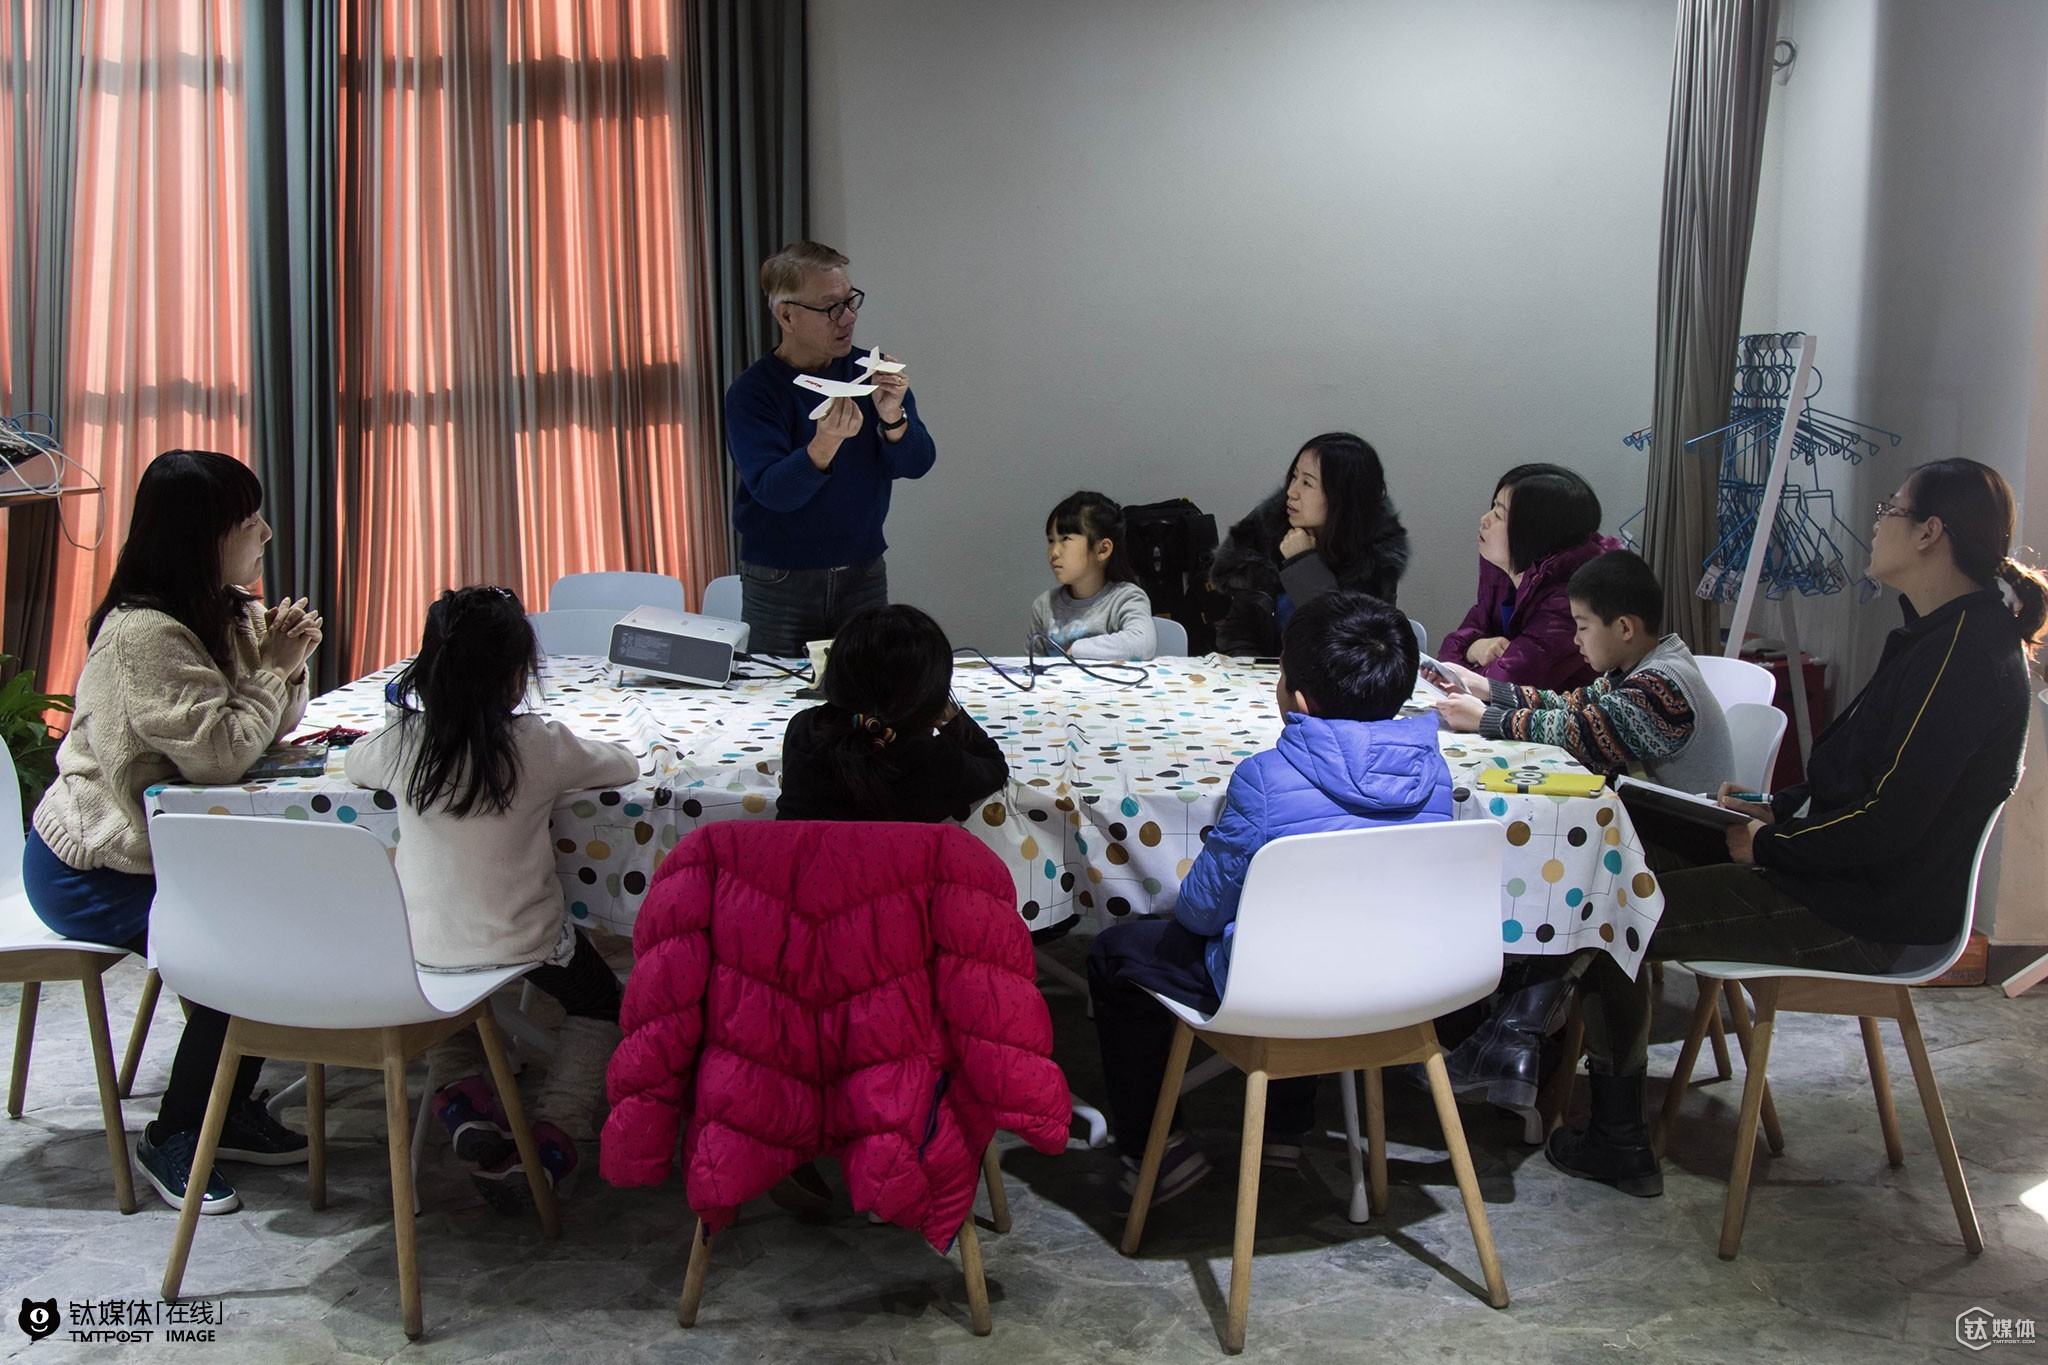 "January 19th 2016, Zheng Fude was teaching a parent-children airplane model making course at an early education center in Beijing. Zheng Ailing's profession was early education. When his father met its lowest point of his life, she encouraged him to teach local kids plane model making in Taoyuan. ""We did it for free for a month and then when we started to charge them for tuition fee we realized that these kids' families were quite poor,"" Ailing and Fude were not sure if they should continue to teach plane model courses at that time. Though upset as he was, Zheng Fude persuaded Ailing to continue their business: ""Everyone of us has our own suffering and hardship. And since we have met each other, we should take our responsibilities and keep teaching them."" Subsequently, they started to teach these kids for free. The kids gave Zheng Fude a nickname, Dr. Blue, for whenever they had questions about staff related to the sky, they could always ask Fude. And later after several visits to Beijing, Zheng Fude decided to bring his courses and his airplane models 35 years in the making to this capital city of China. Zheng believed that in Beijing he could once again achieve his own value."